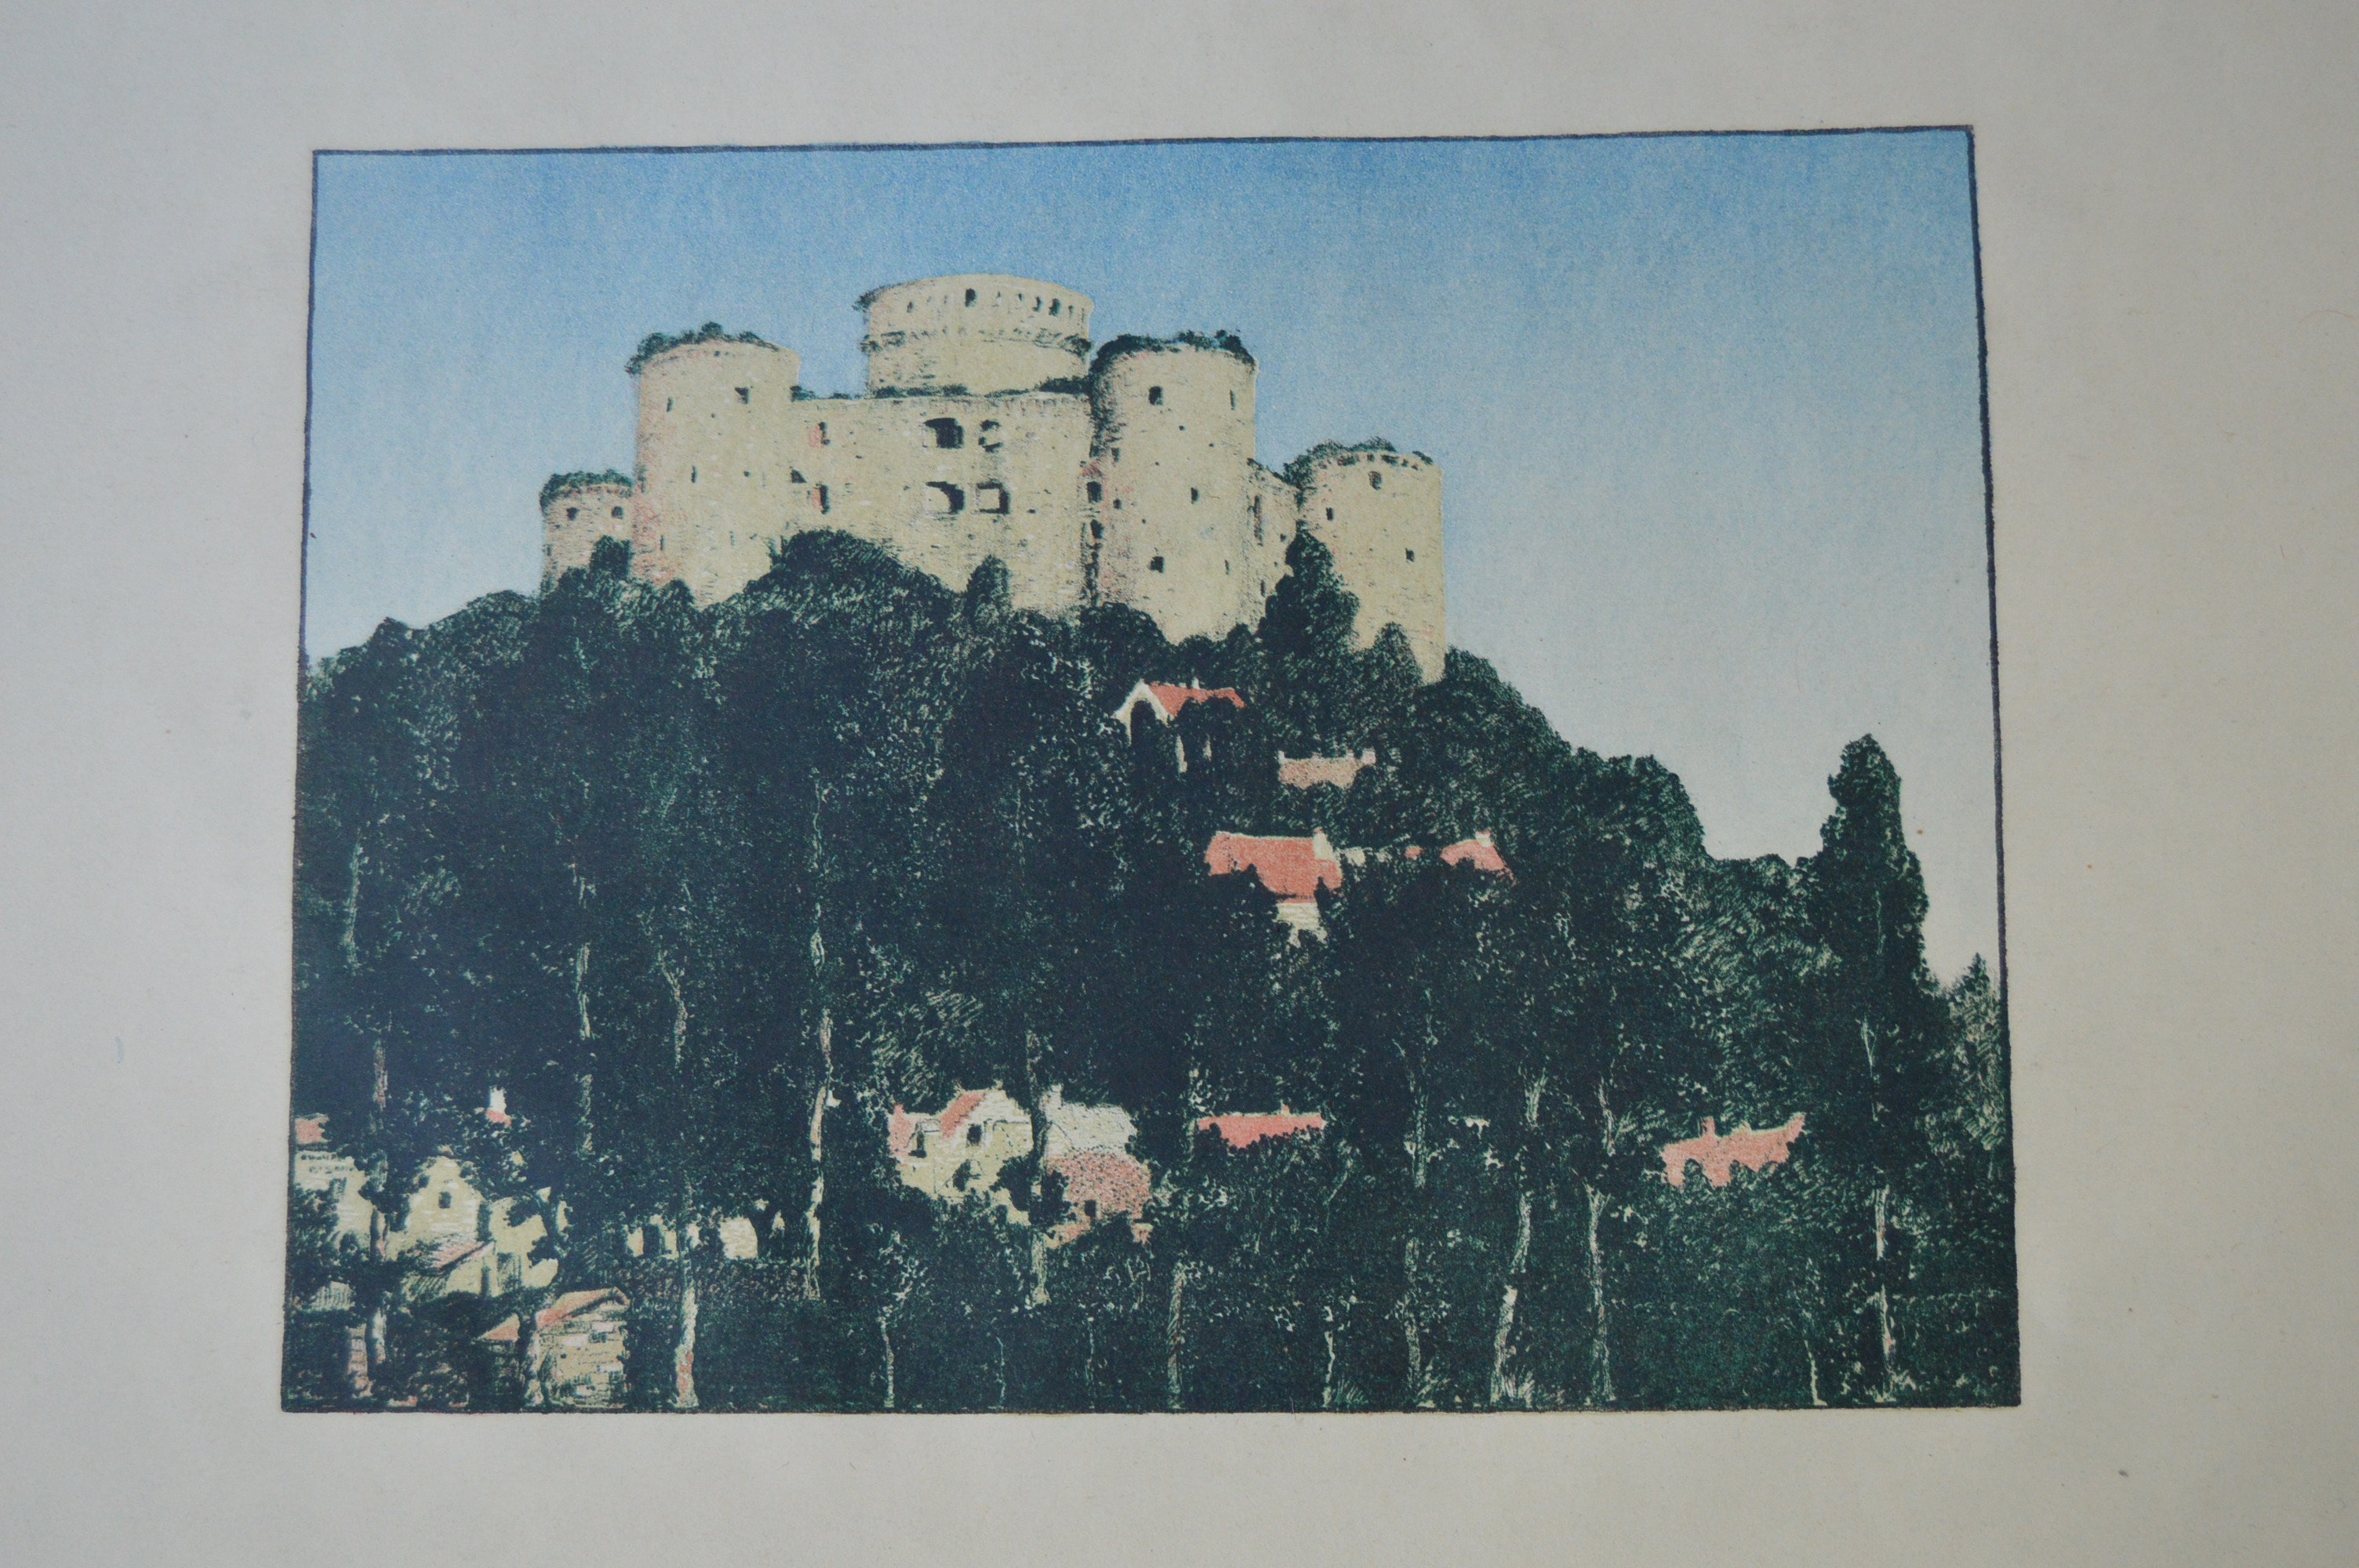 James Hopkins 1910 Lithographic Print of a Castle